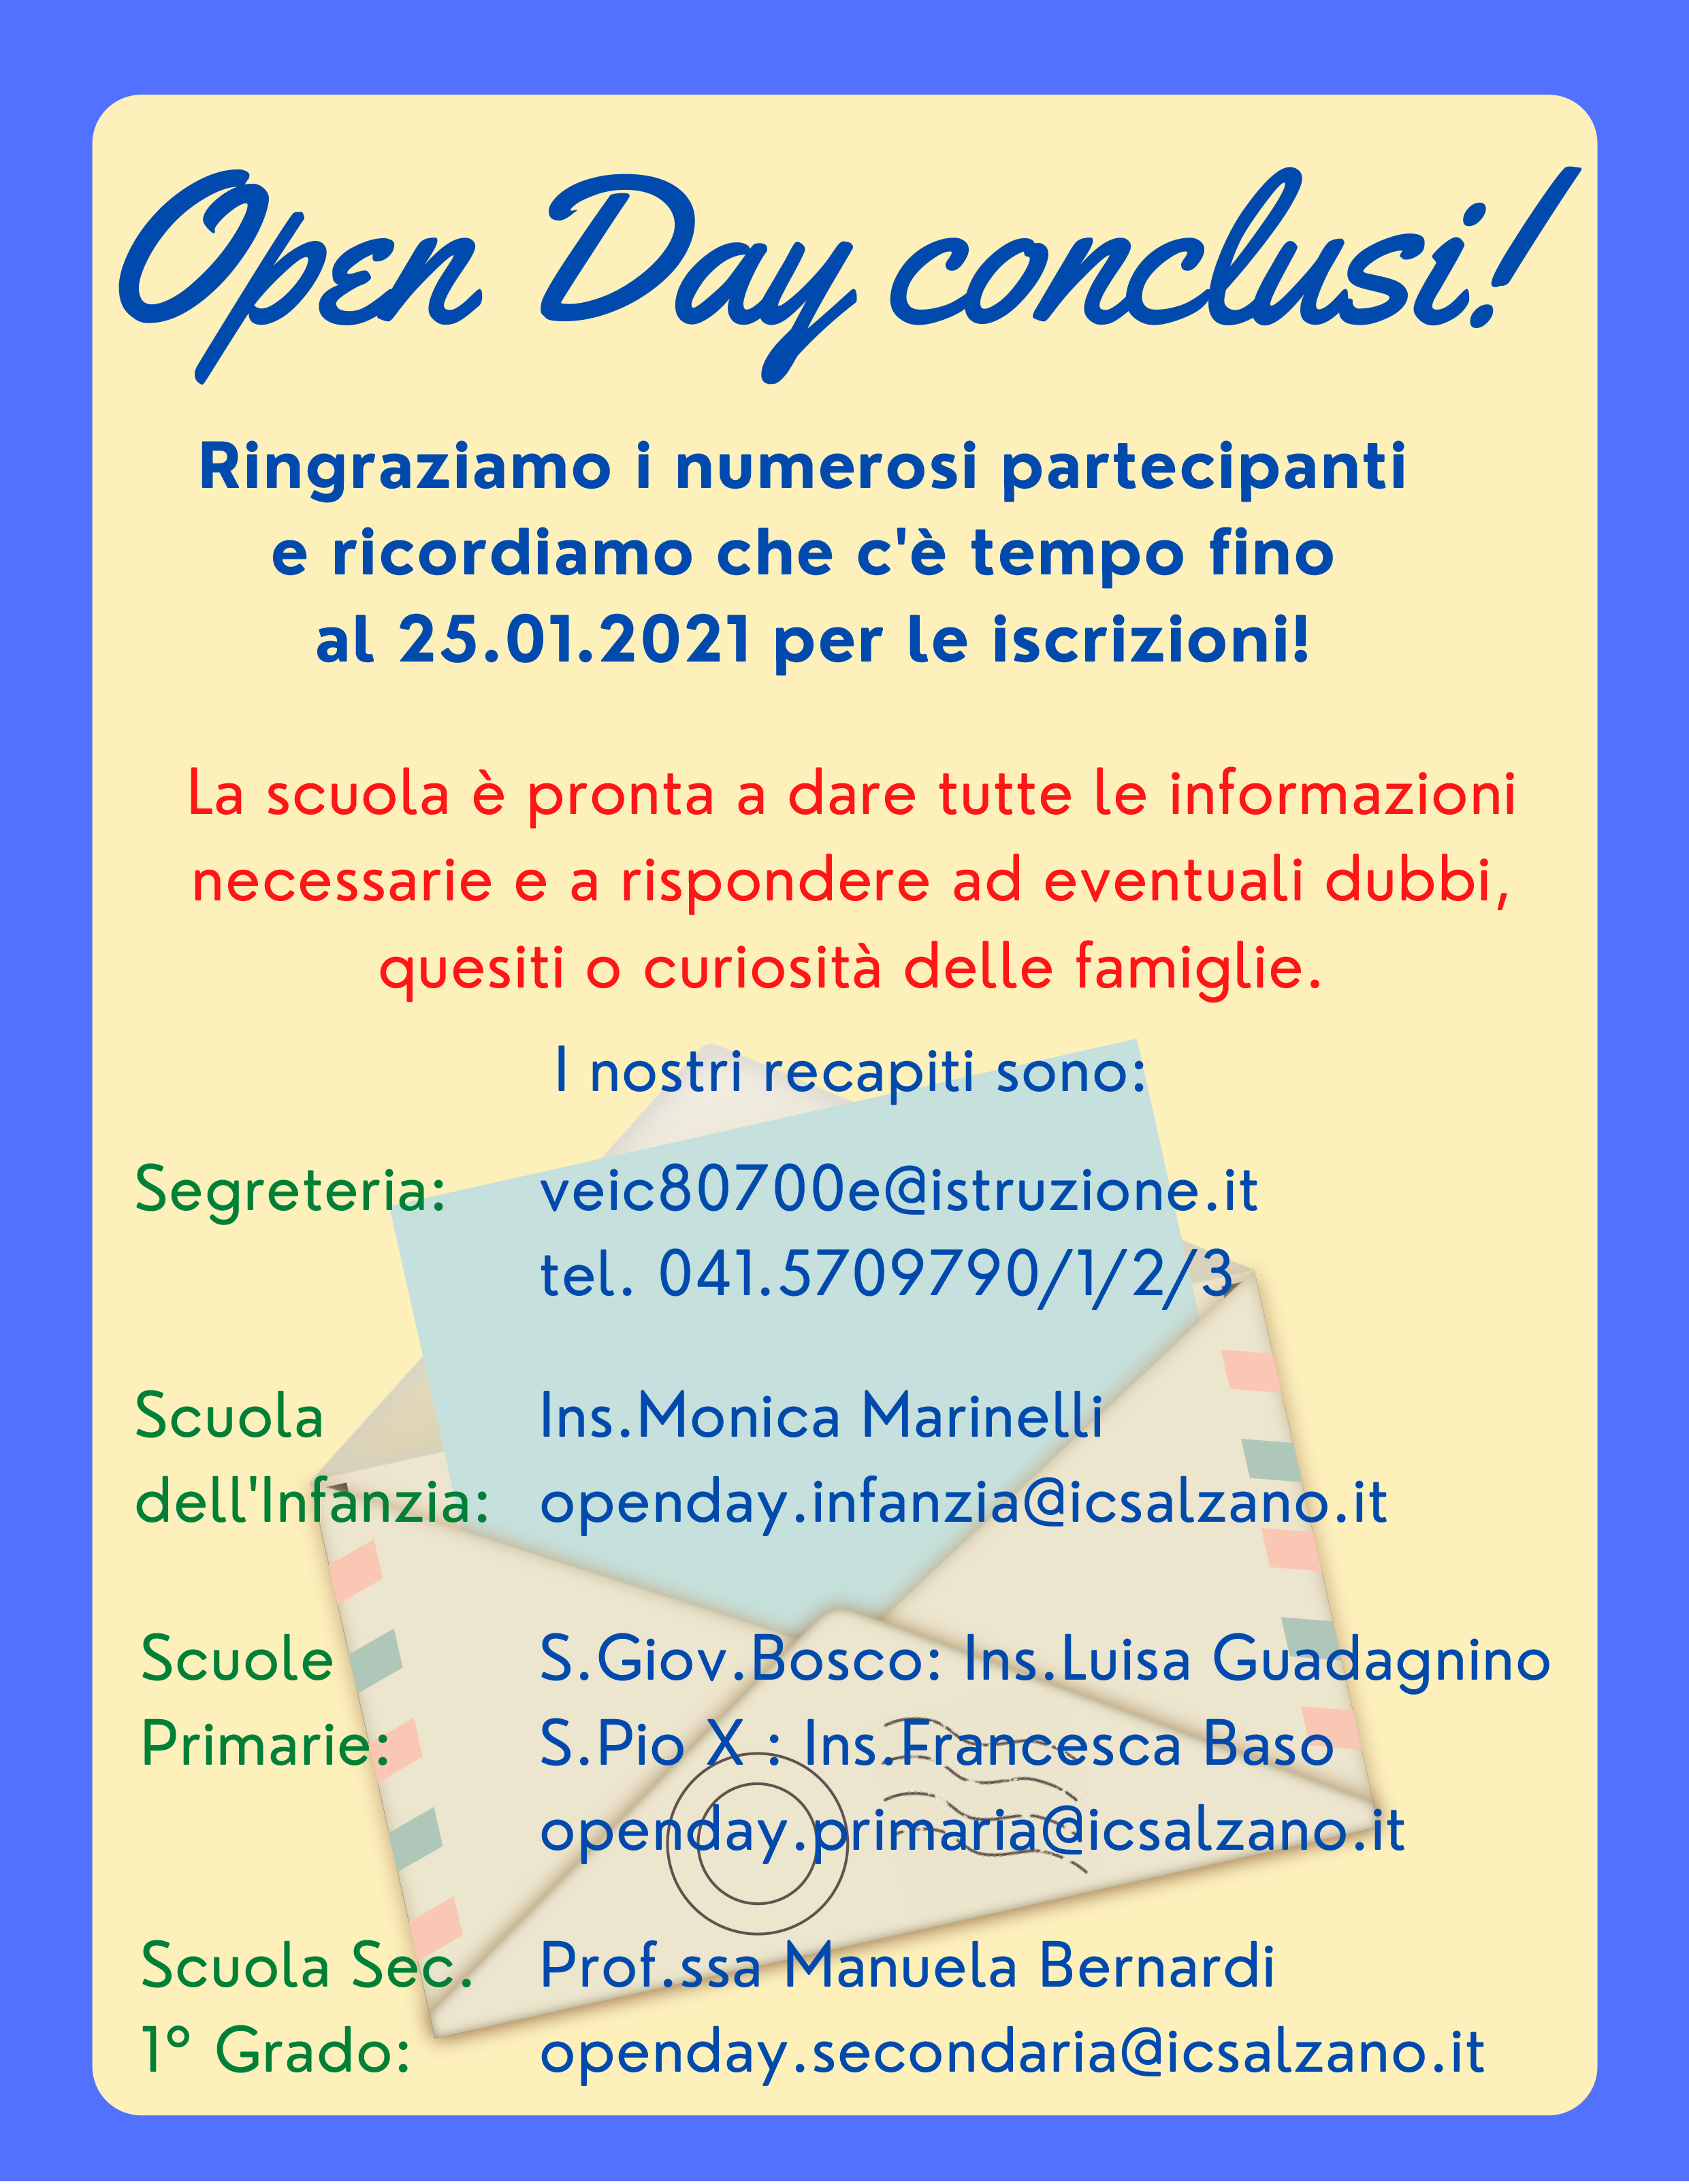 Open Day conclusi!